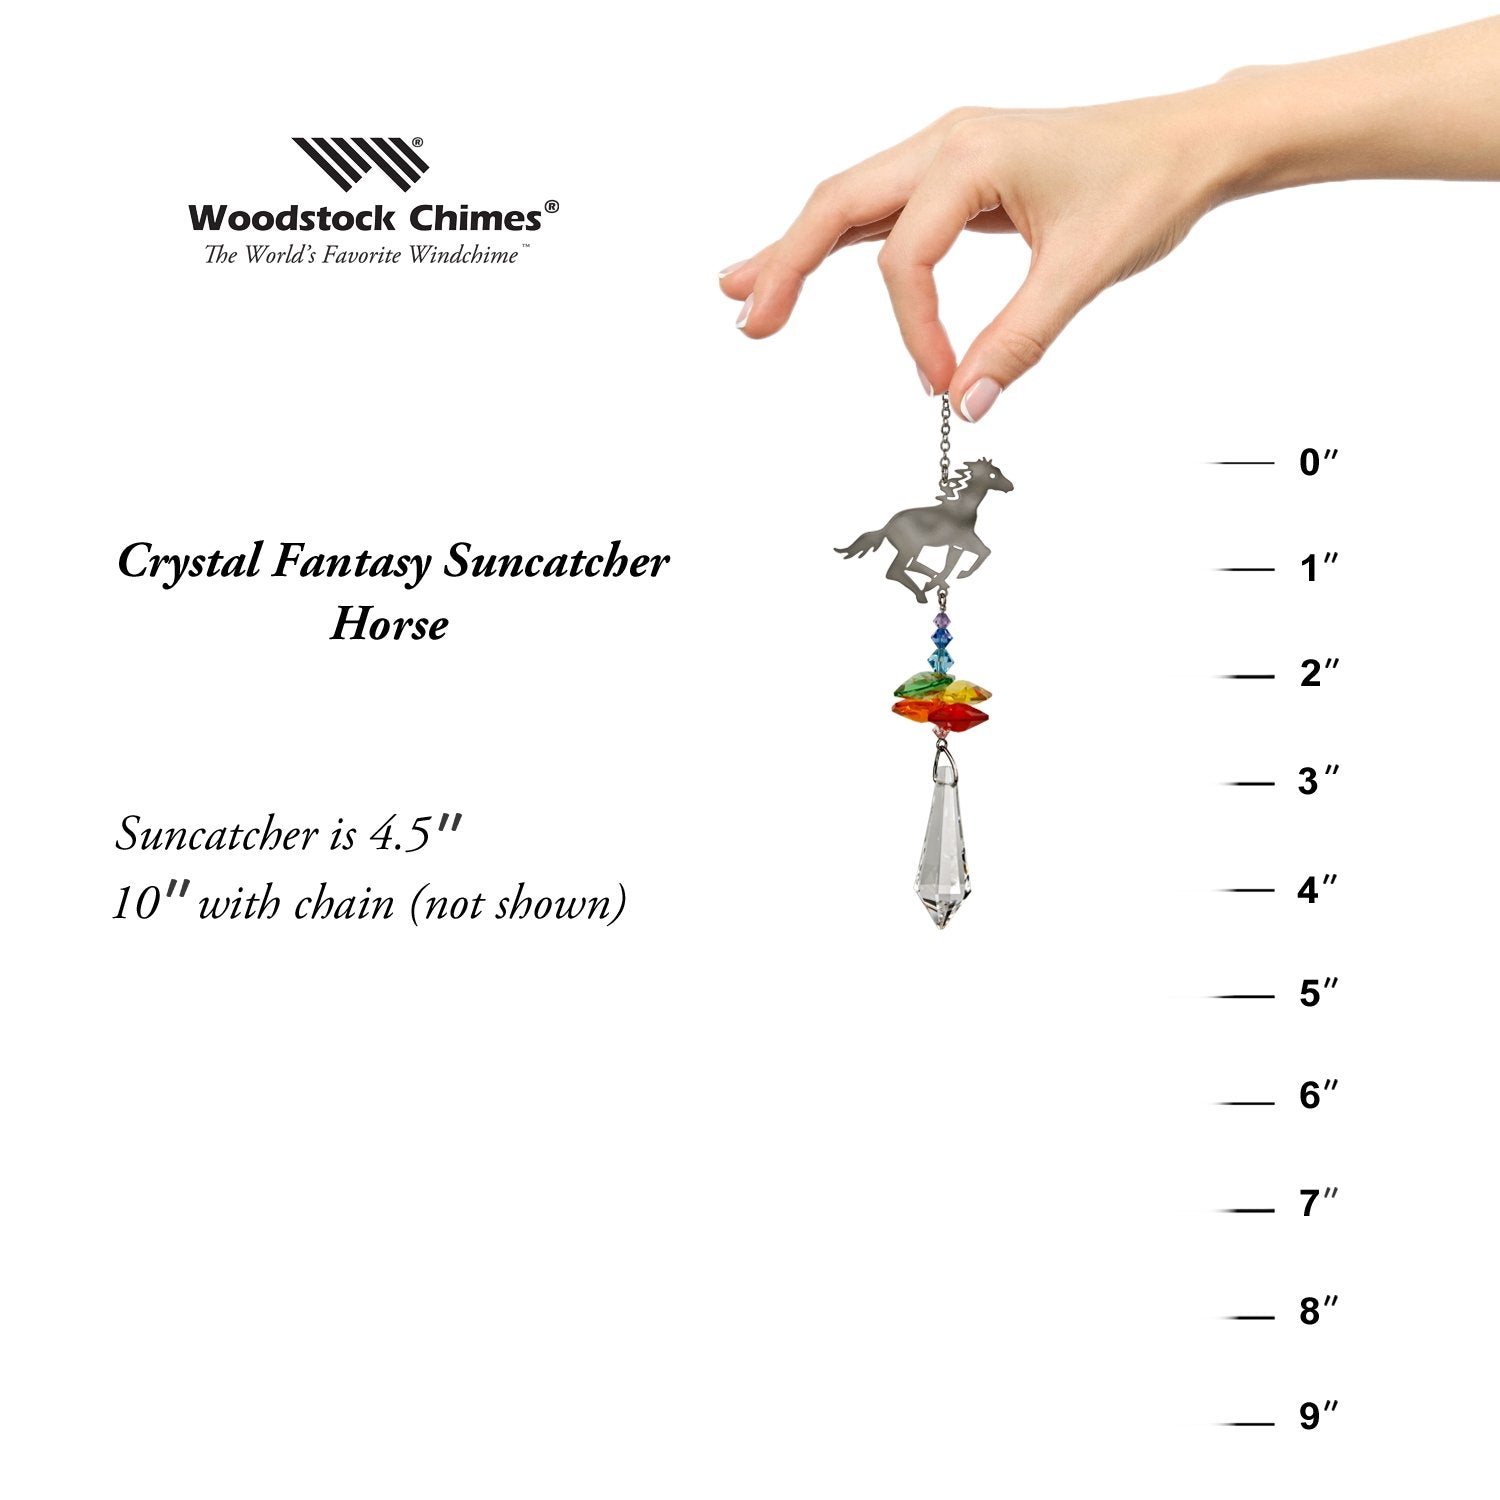 Crystal Fantasy Suncatcher - Horse proportion image